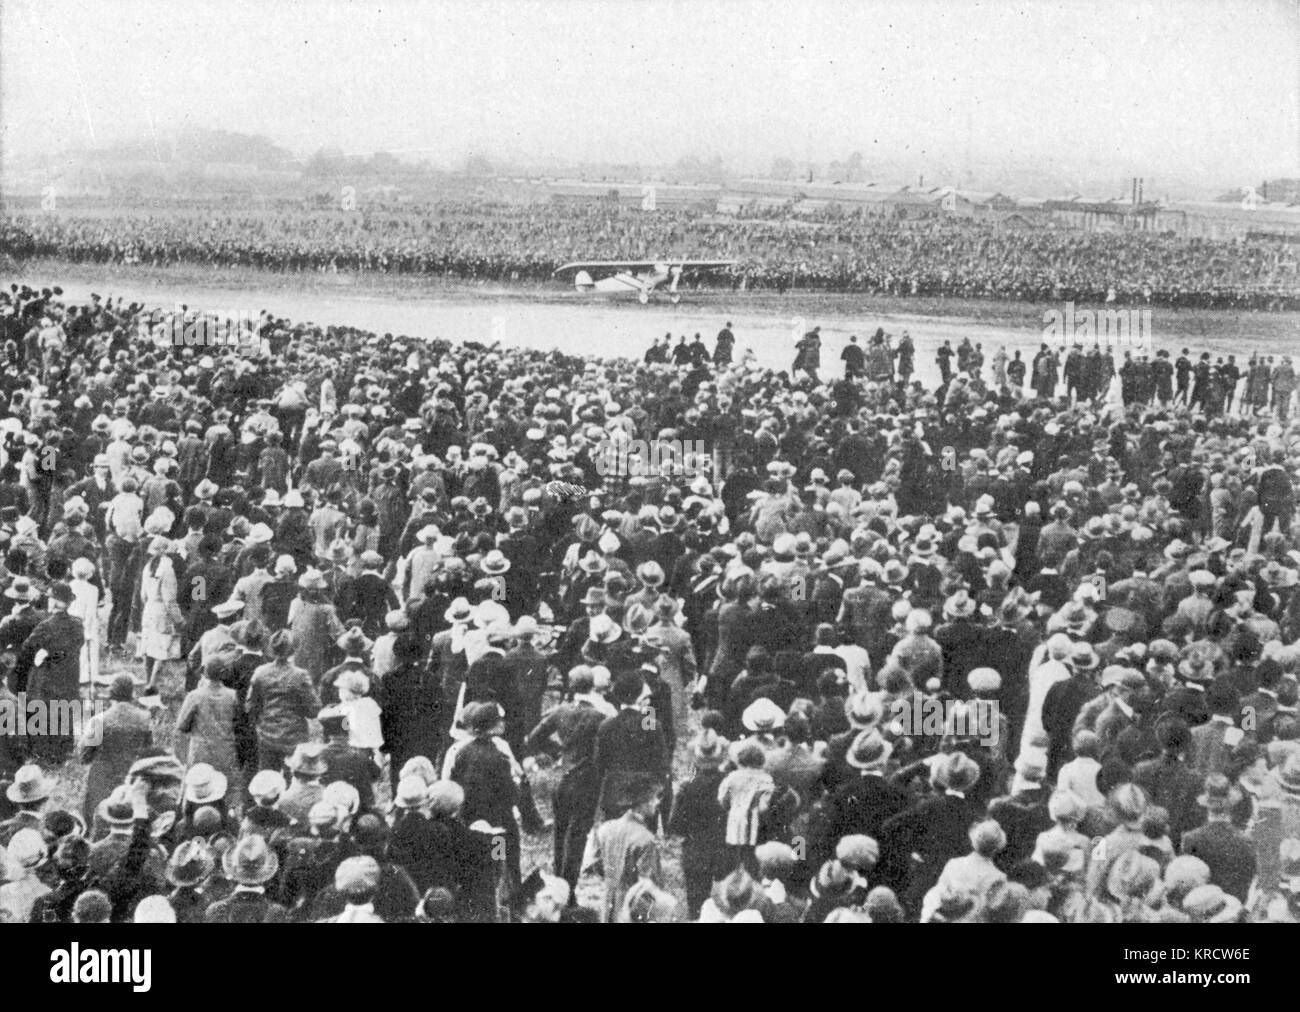 Thousands of people gather to welcome Charles Lindbergh and the 'Spirit of St. Louis' to Croydon, London. - Stock Image